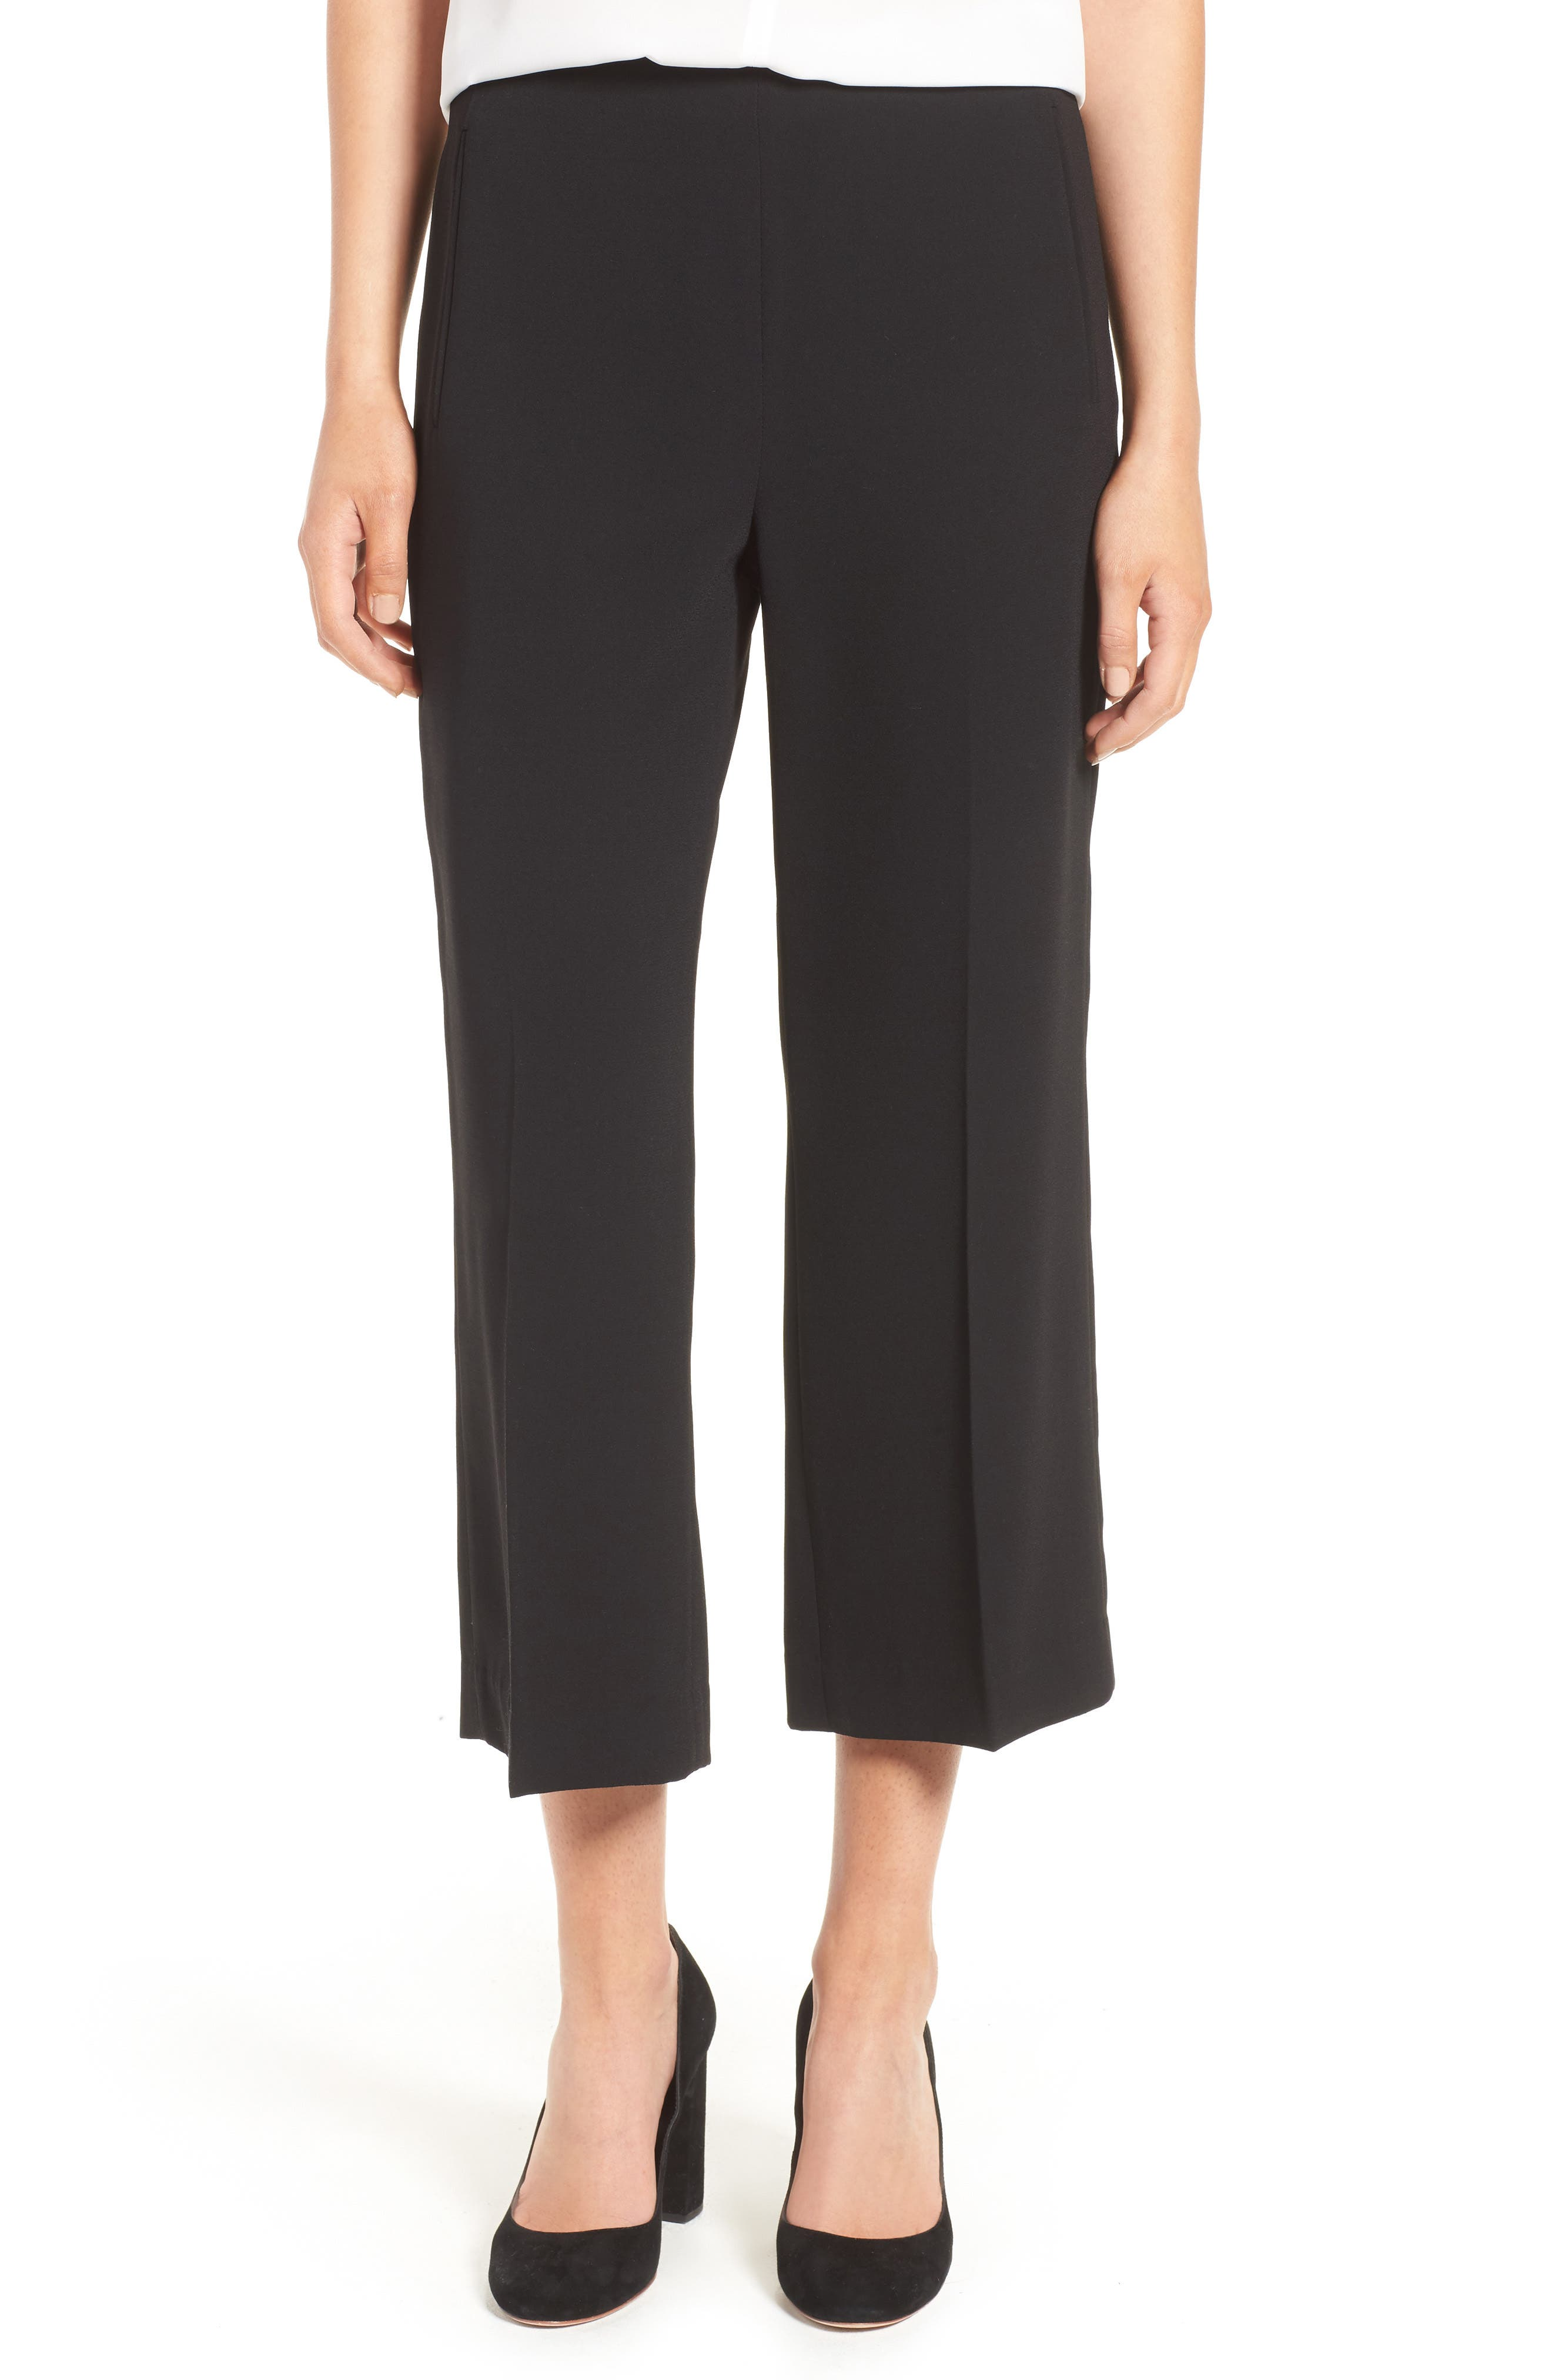 Alternate Image 1 Selected - CeCe Moss Crepe Crop Trousers